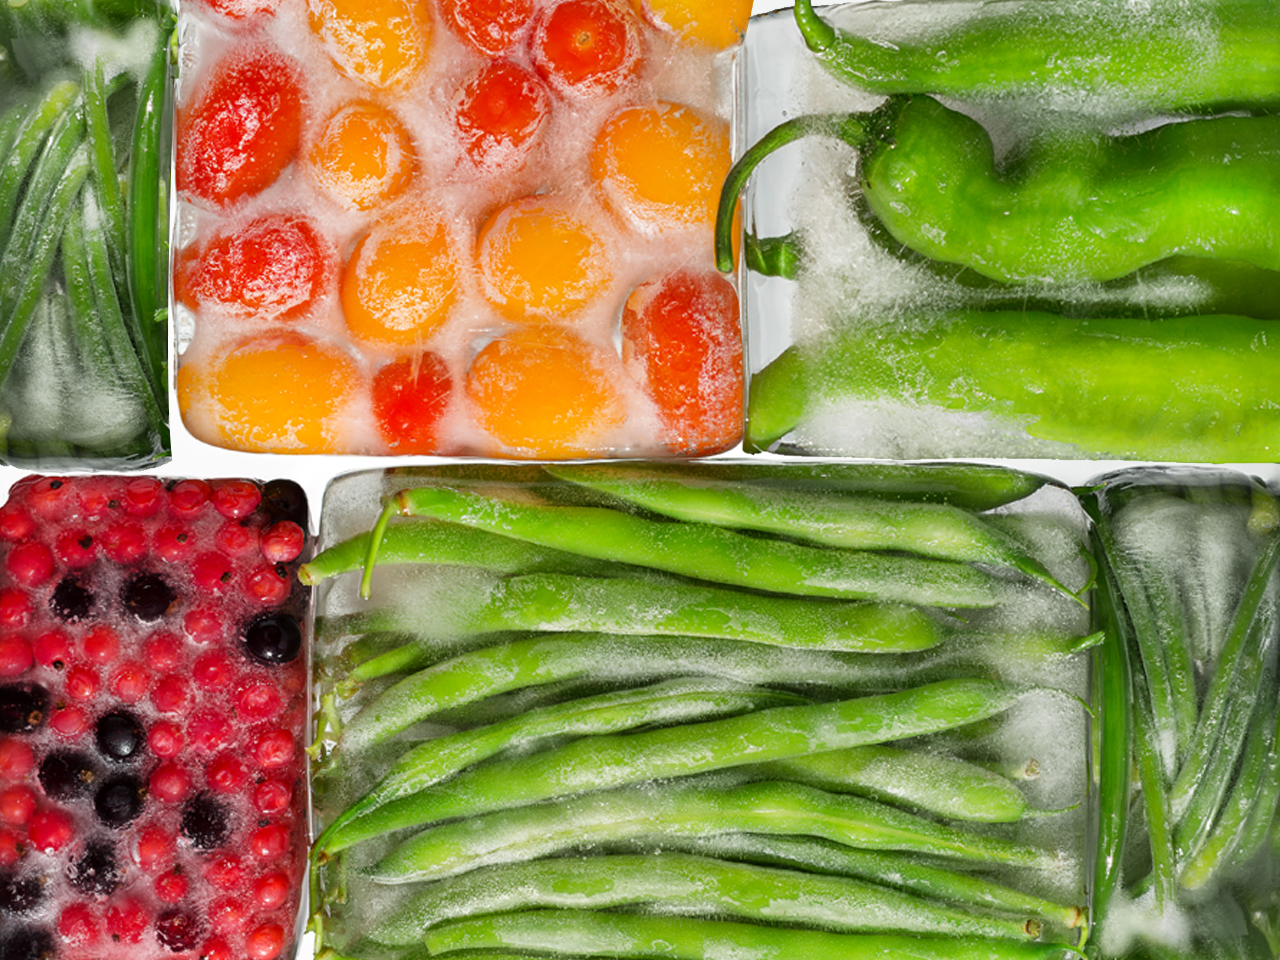 freezer storage: green peppers, tomatoes, green beans, berries in ice cubes